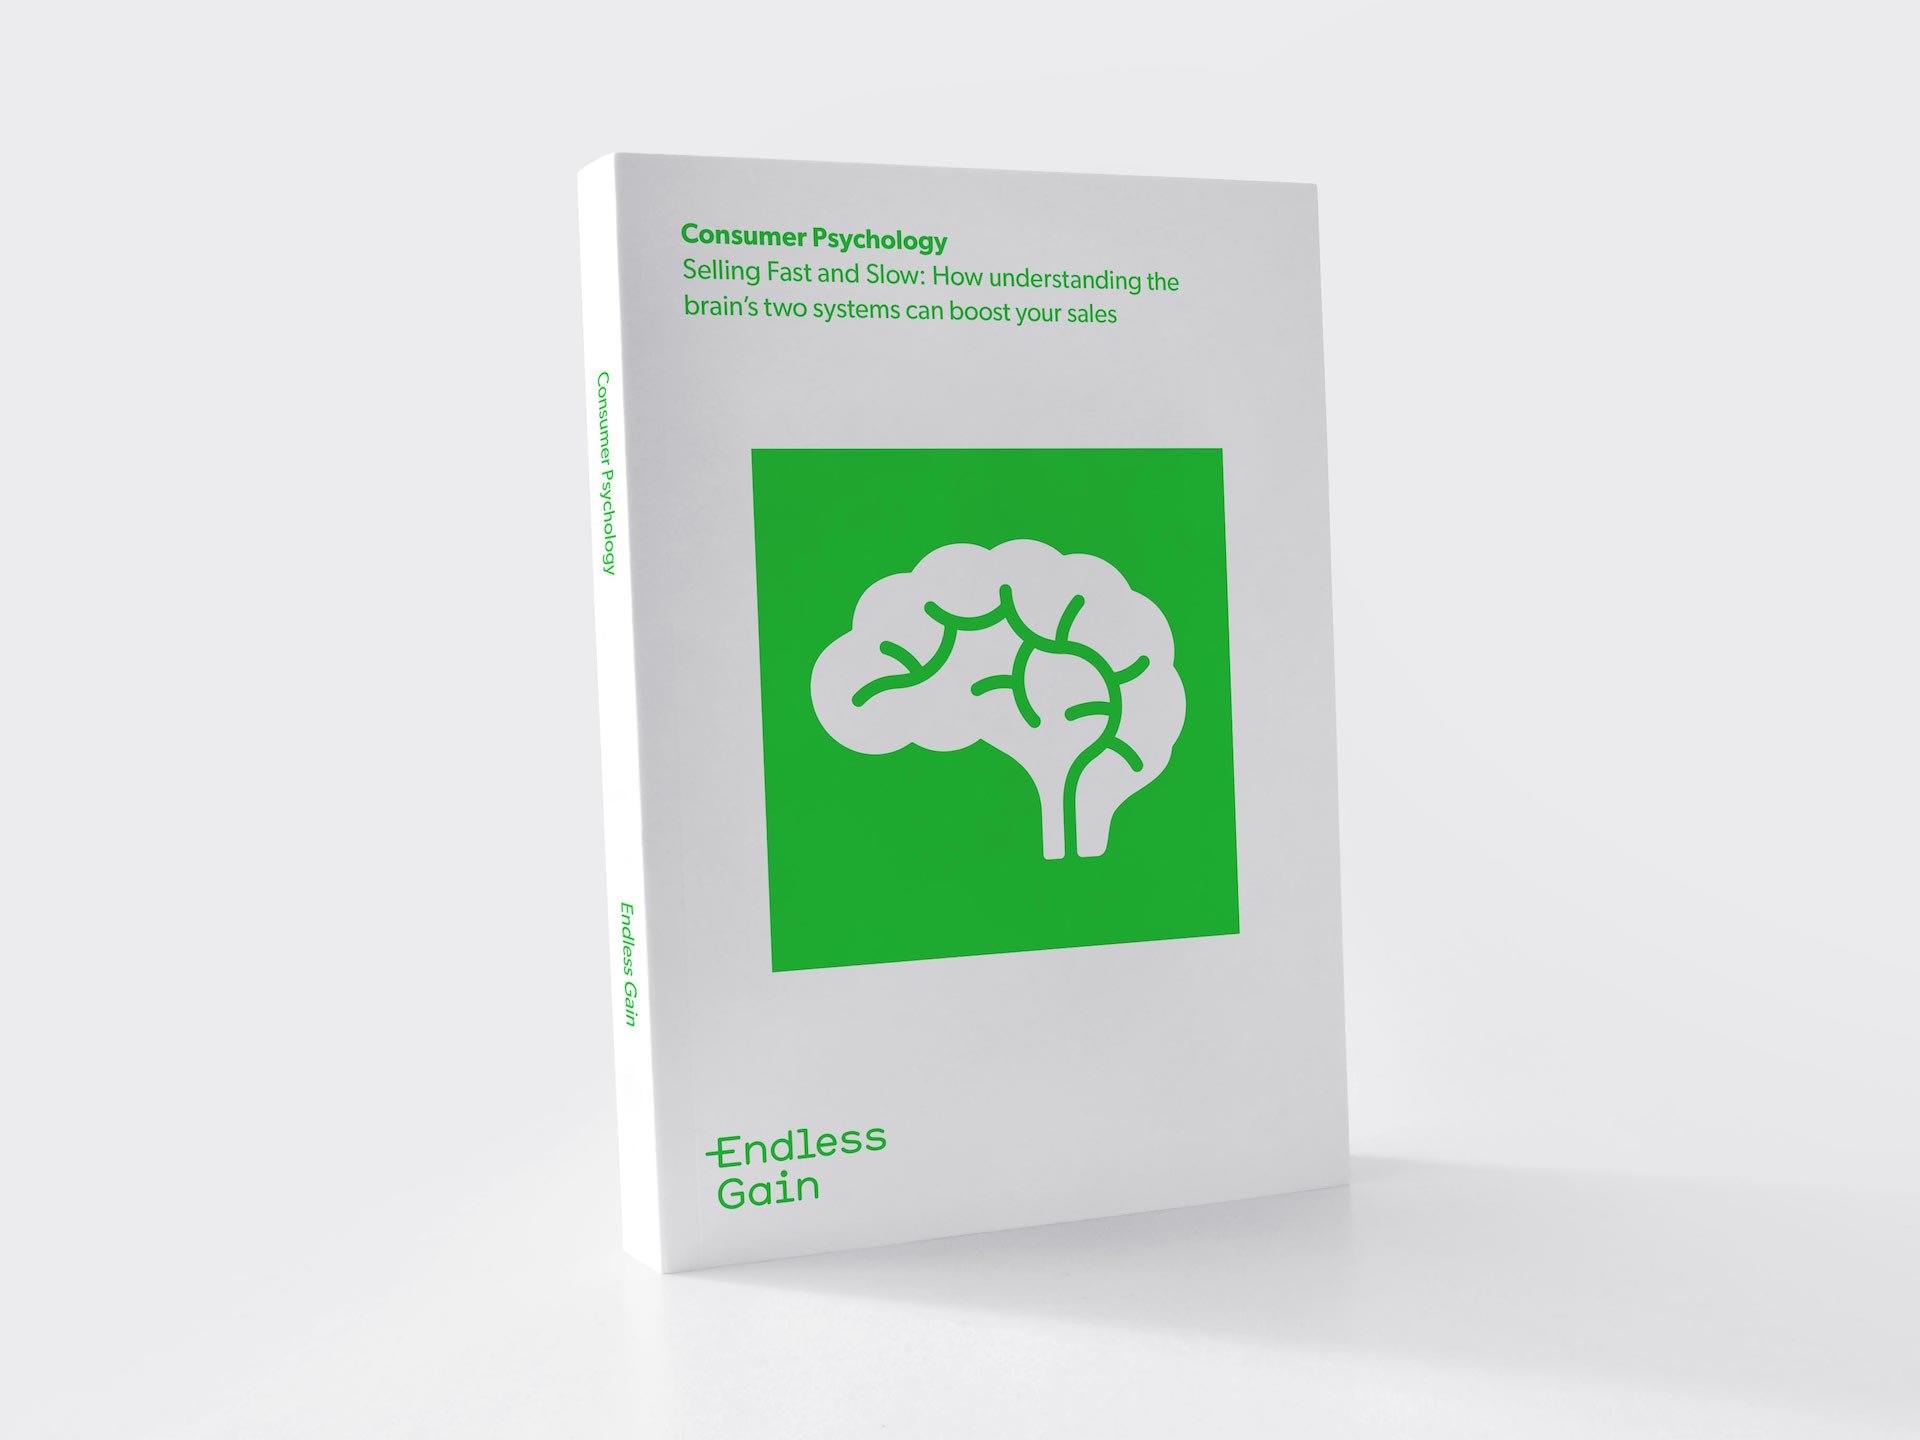 Consumer Psychology: Selling Fast and Slow